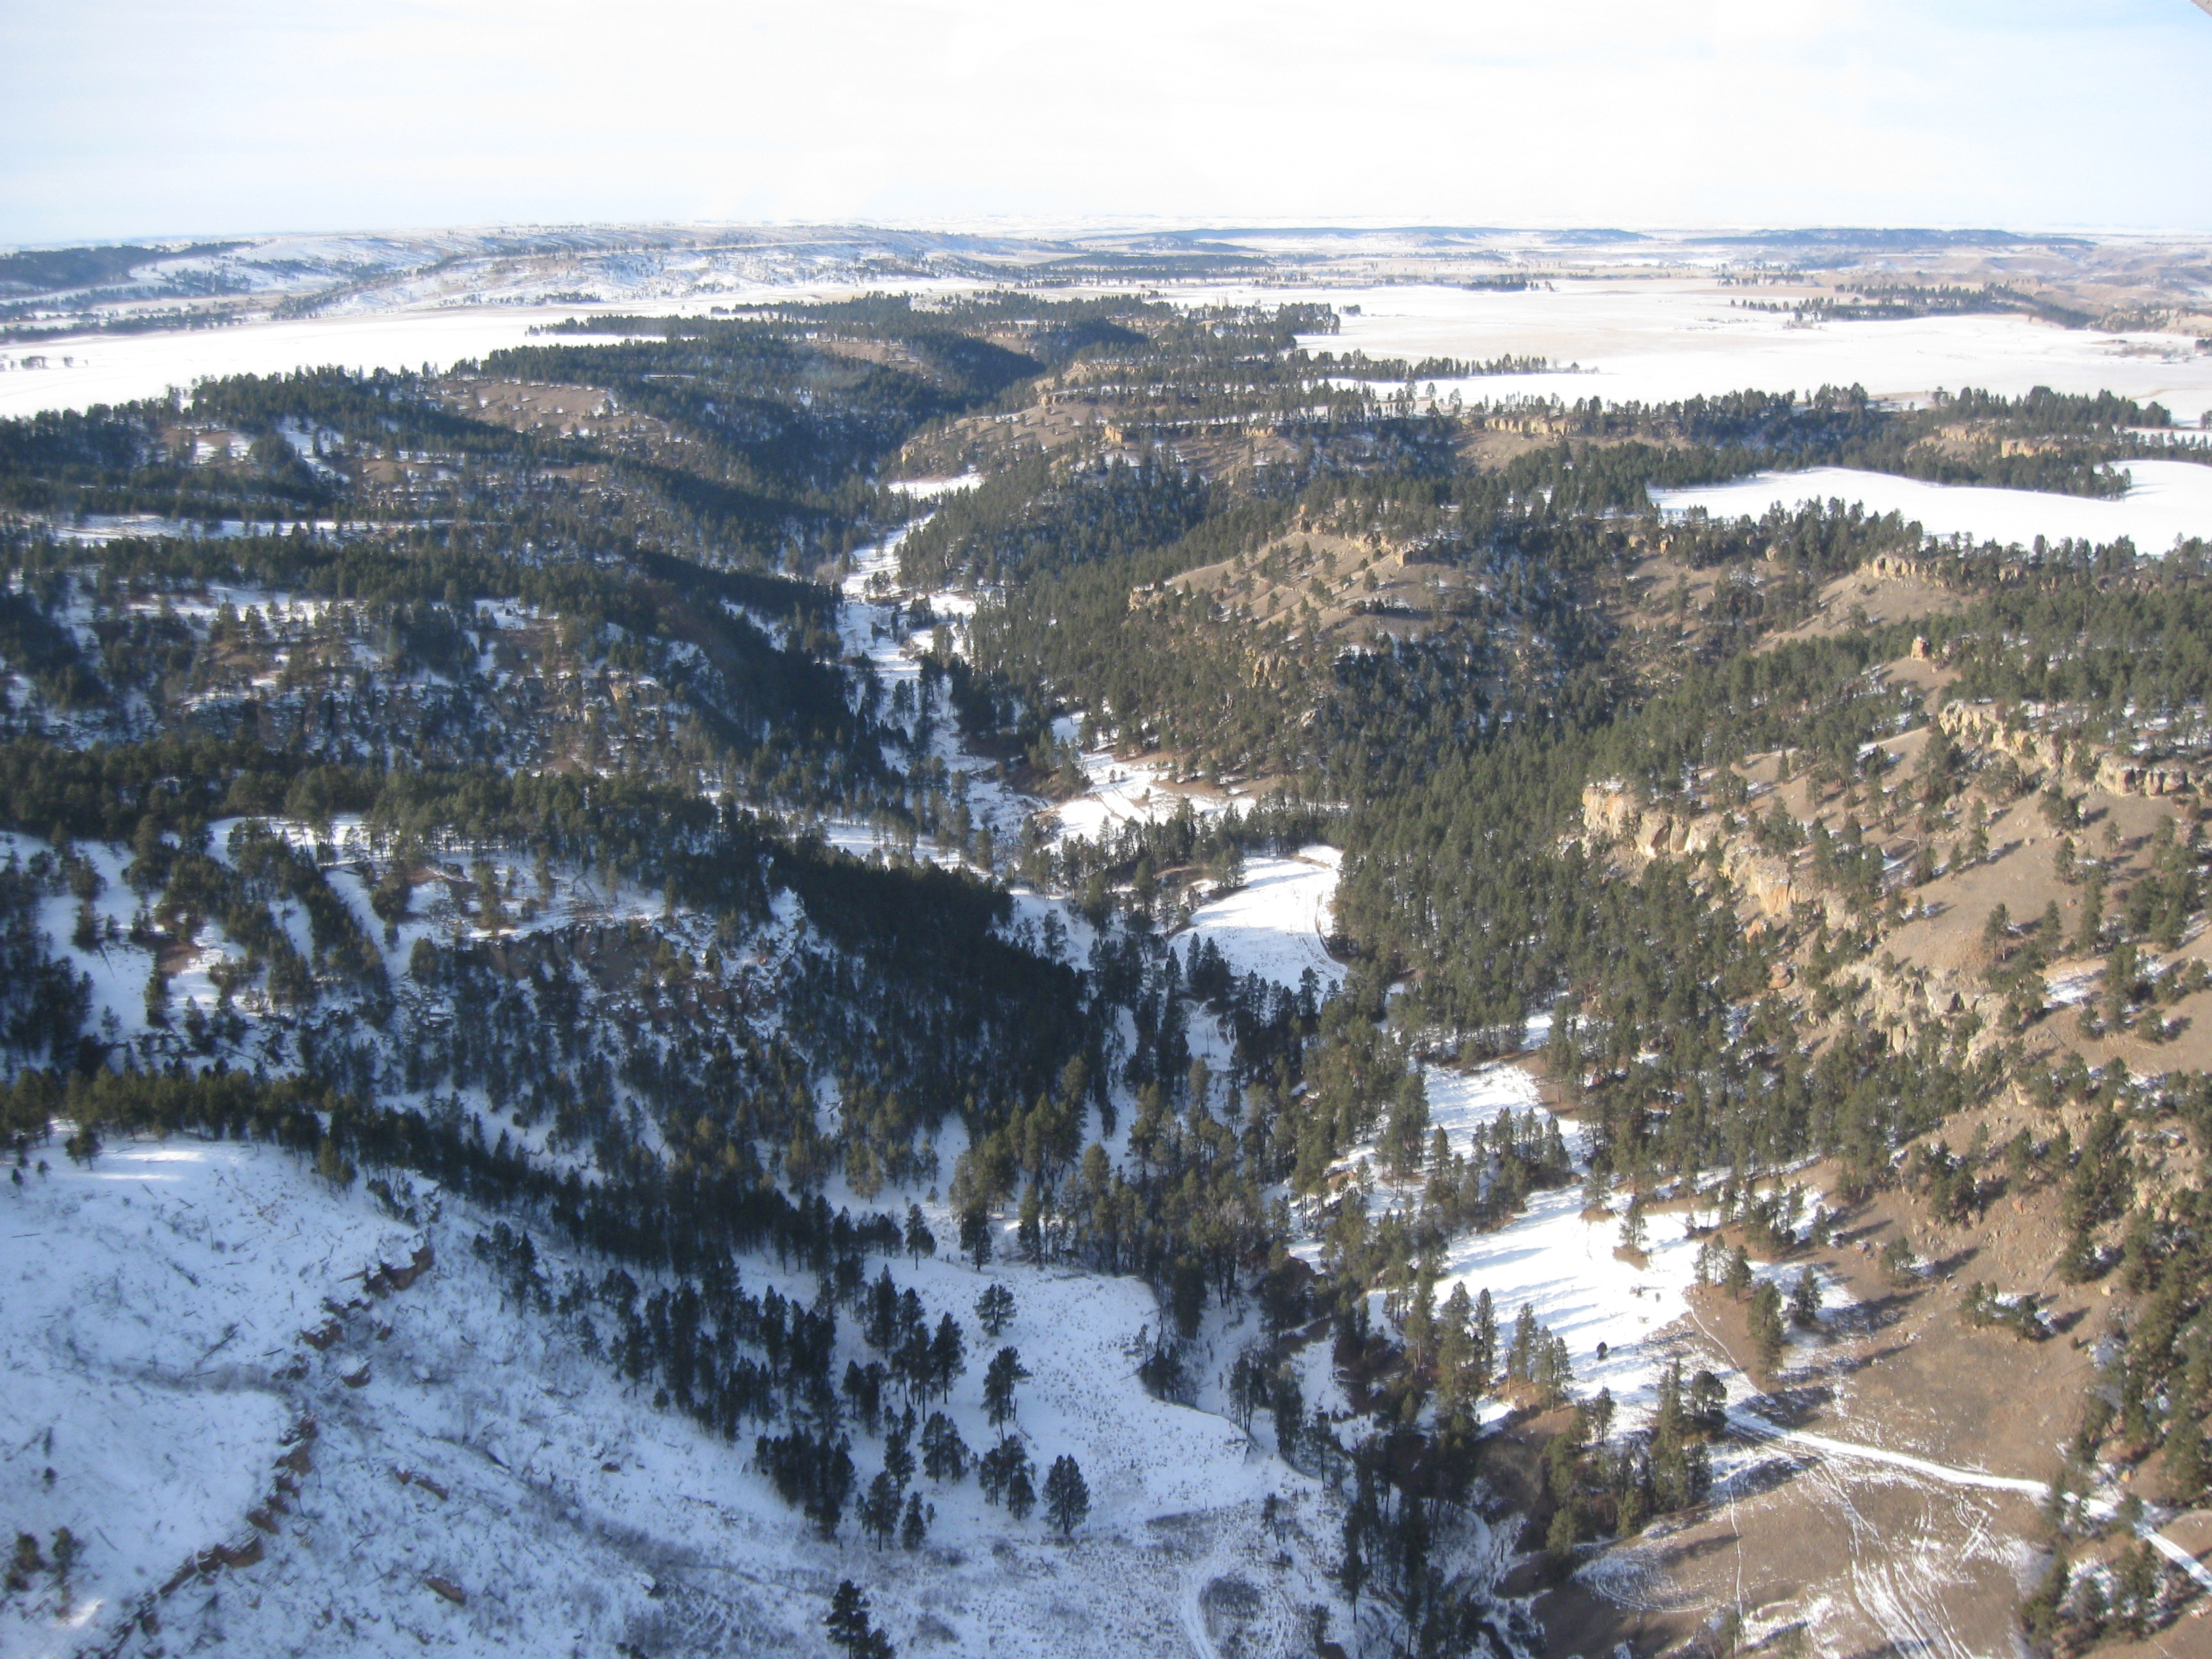 Black Gulch as seen from the air.